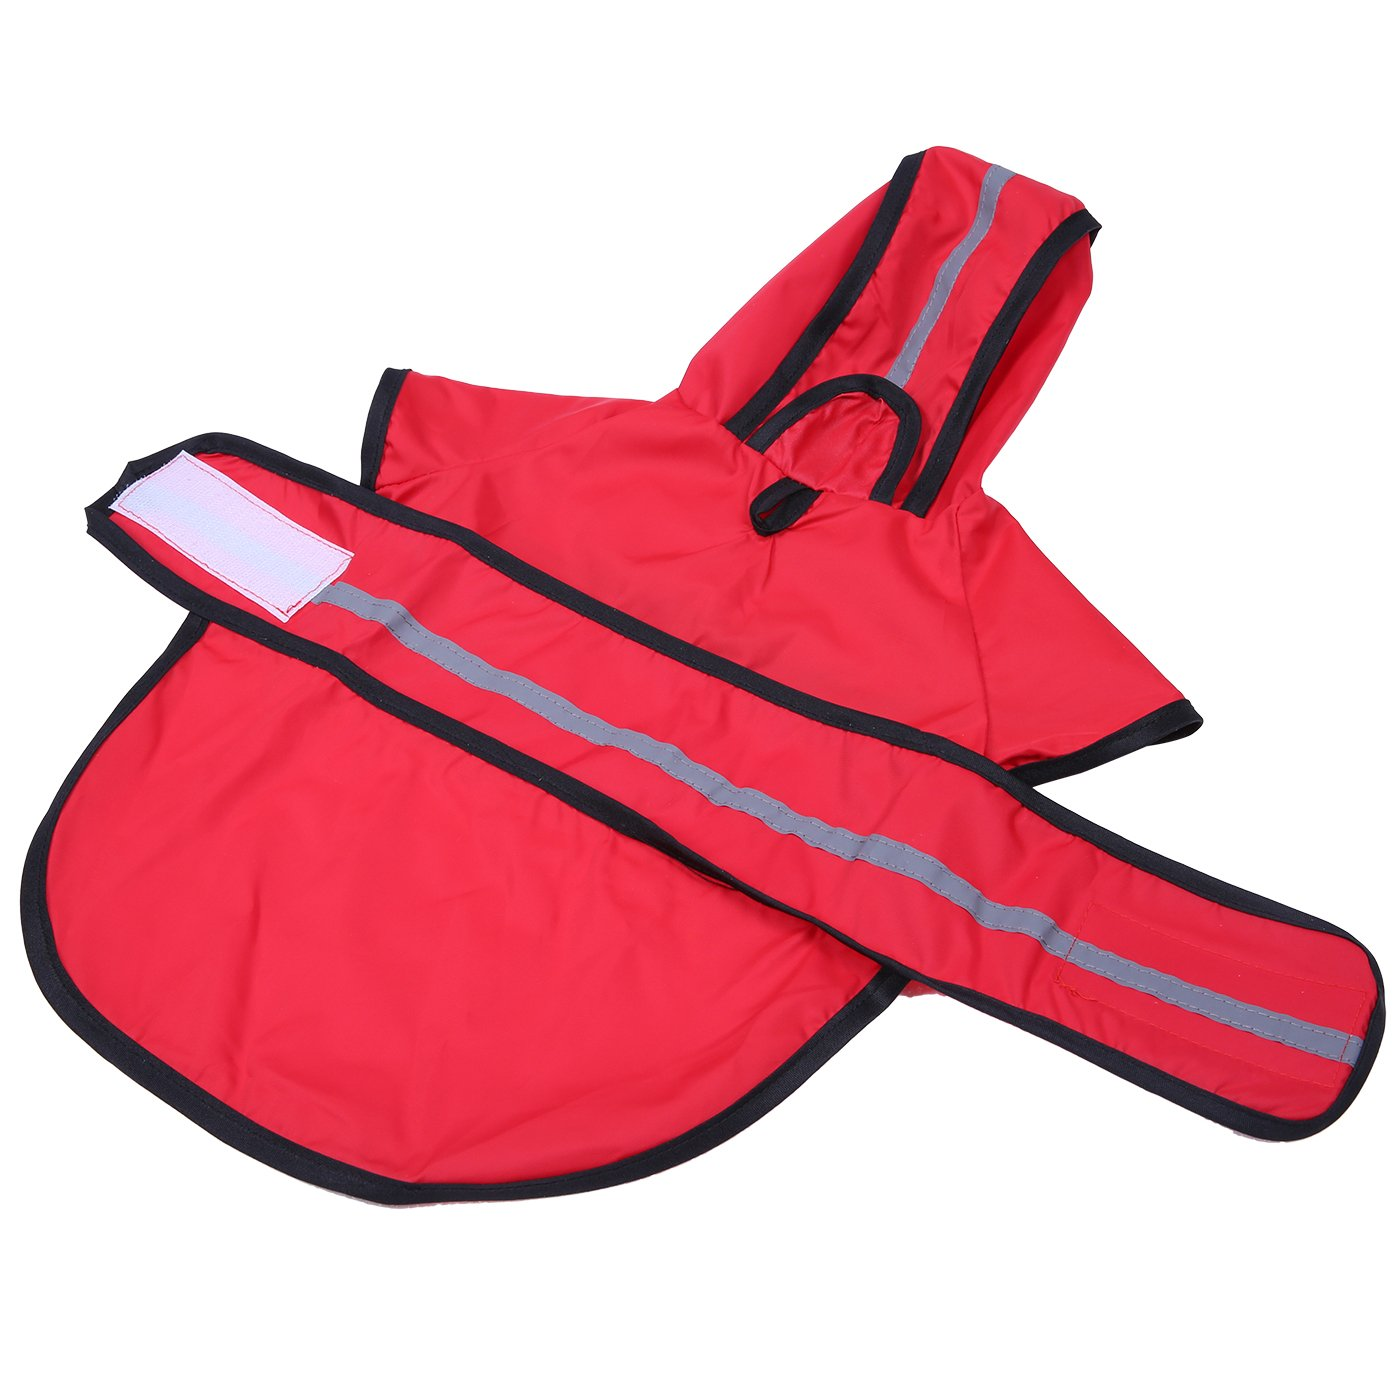 HDE Dog Raincoat Hooded Slicker Poncho for Small to X-Large Dogs and Puppies (Red, Medium) by HDE (Image #7)